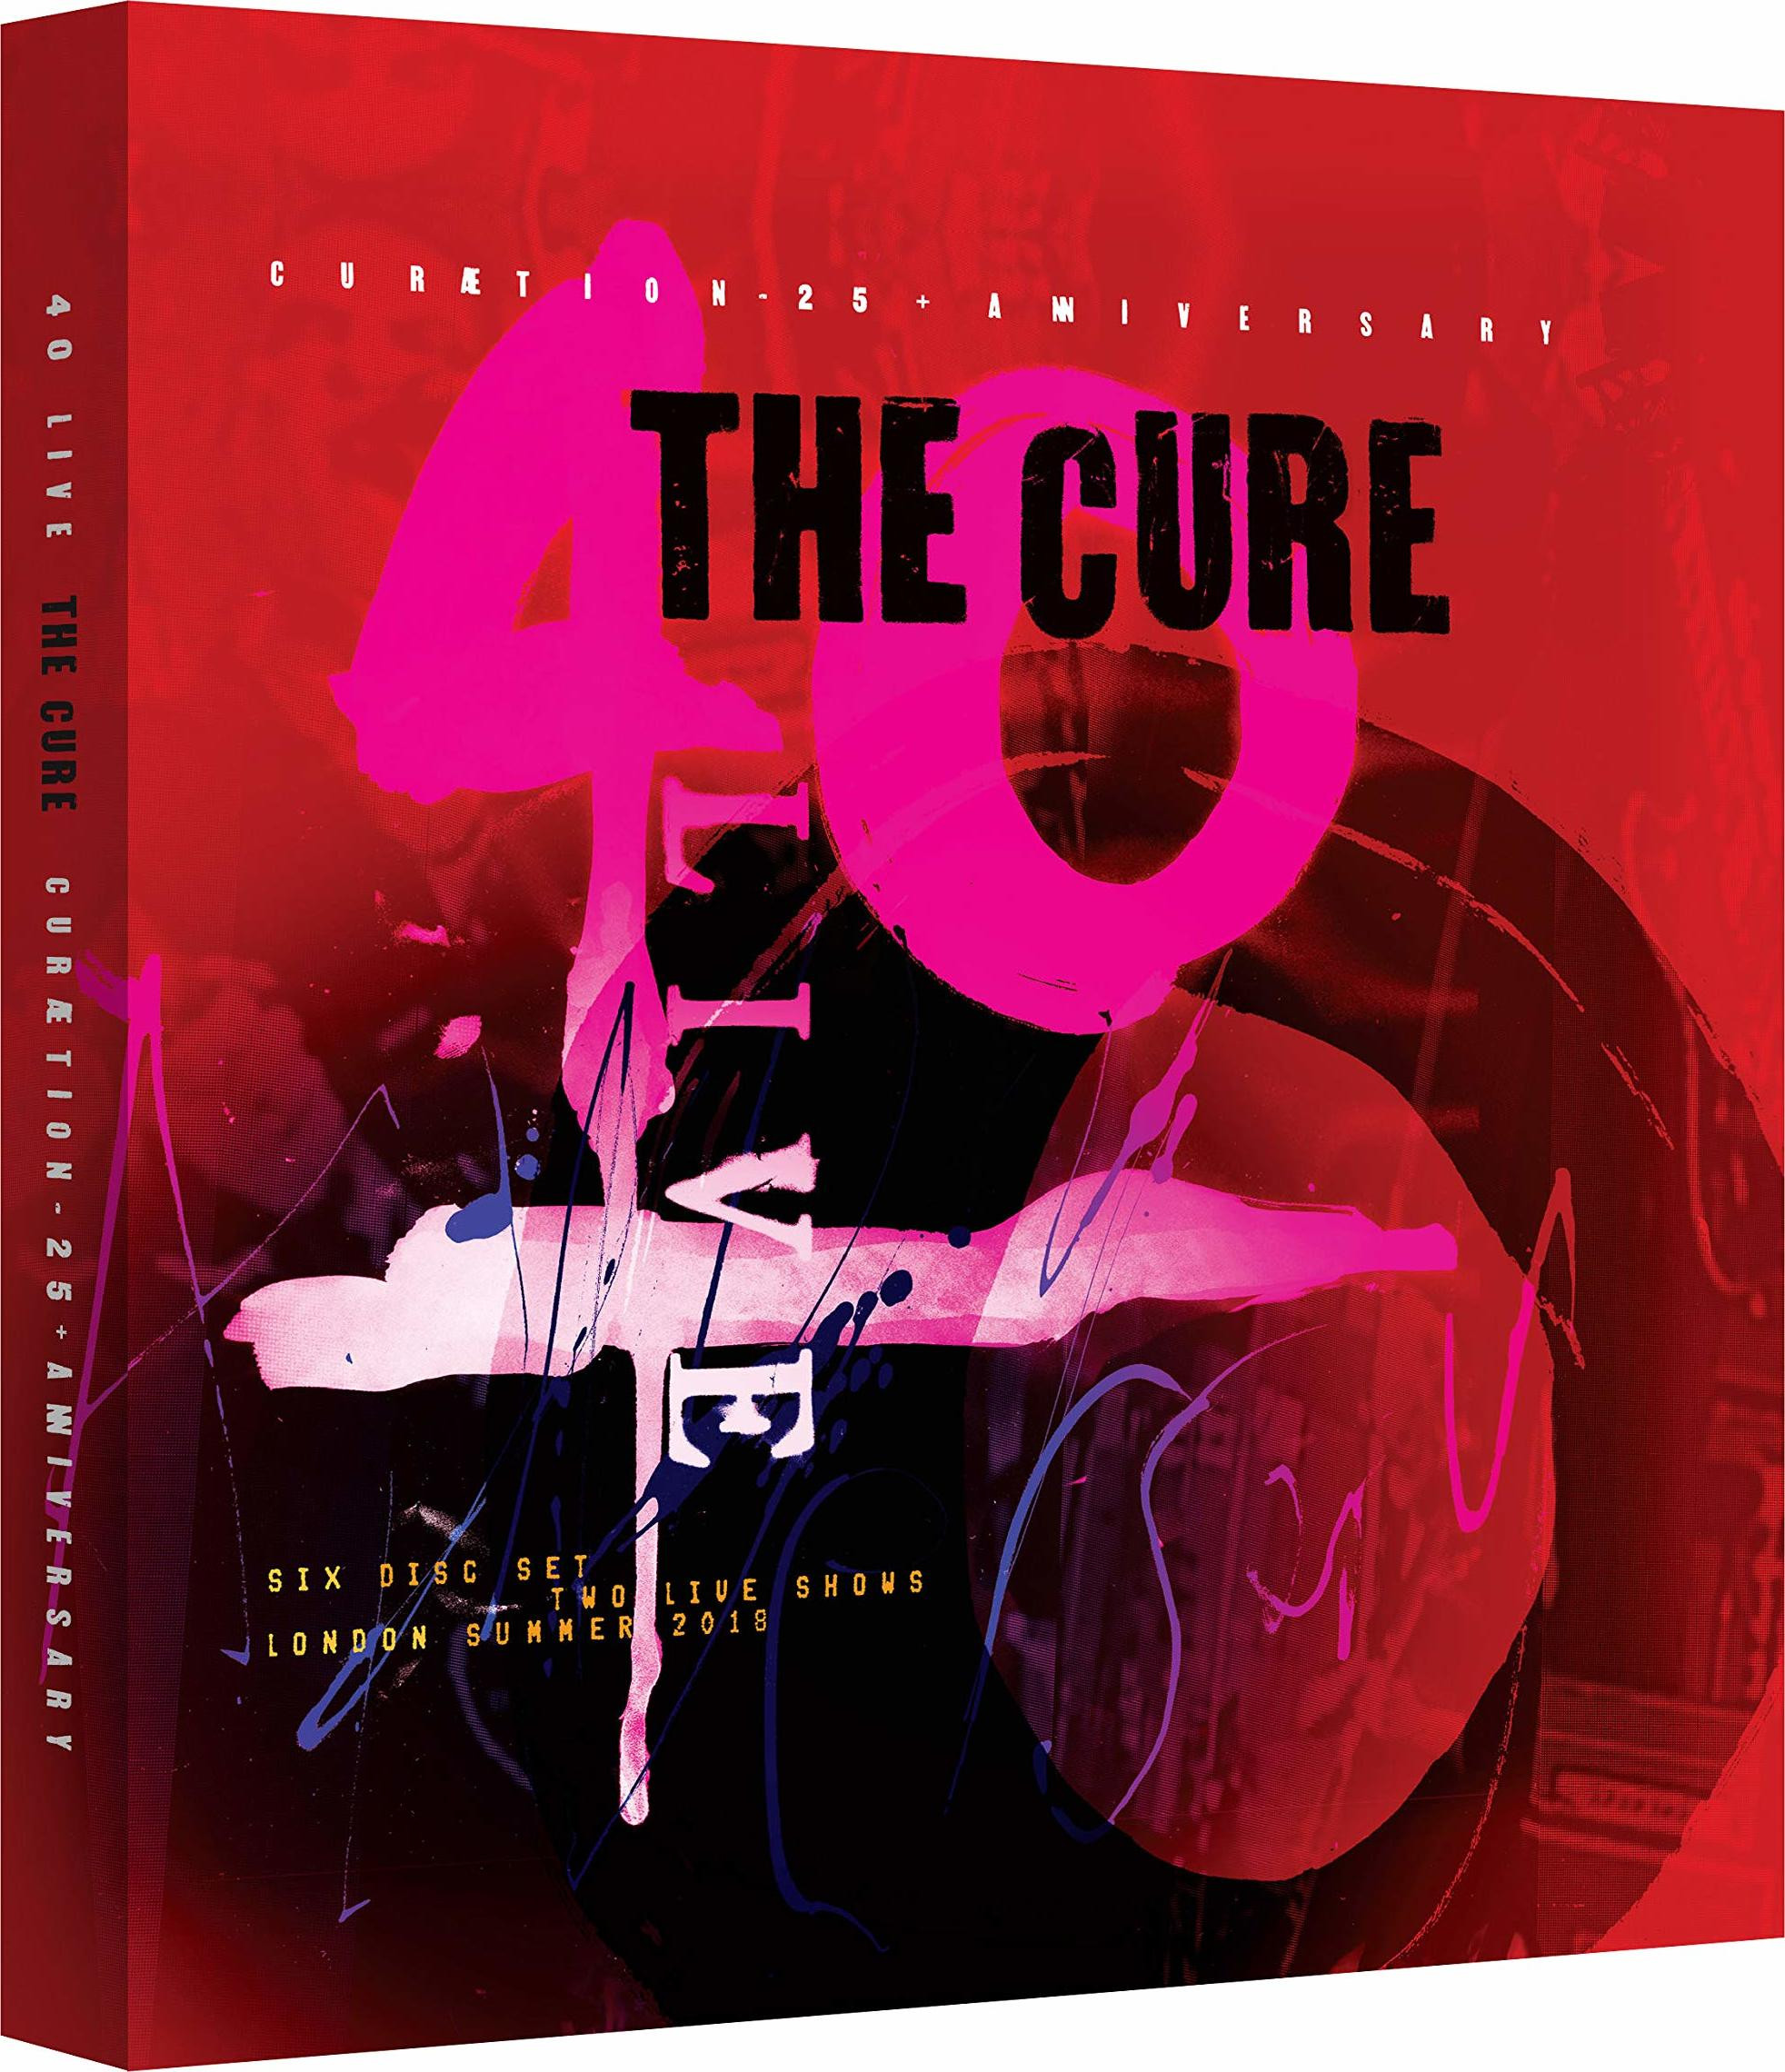 THE CURE (CURAETION 25 + ANNIVERSARY)